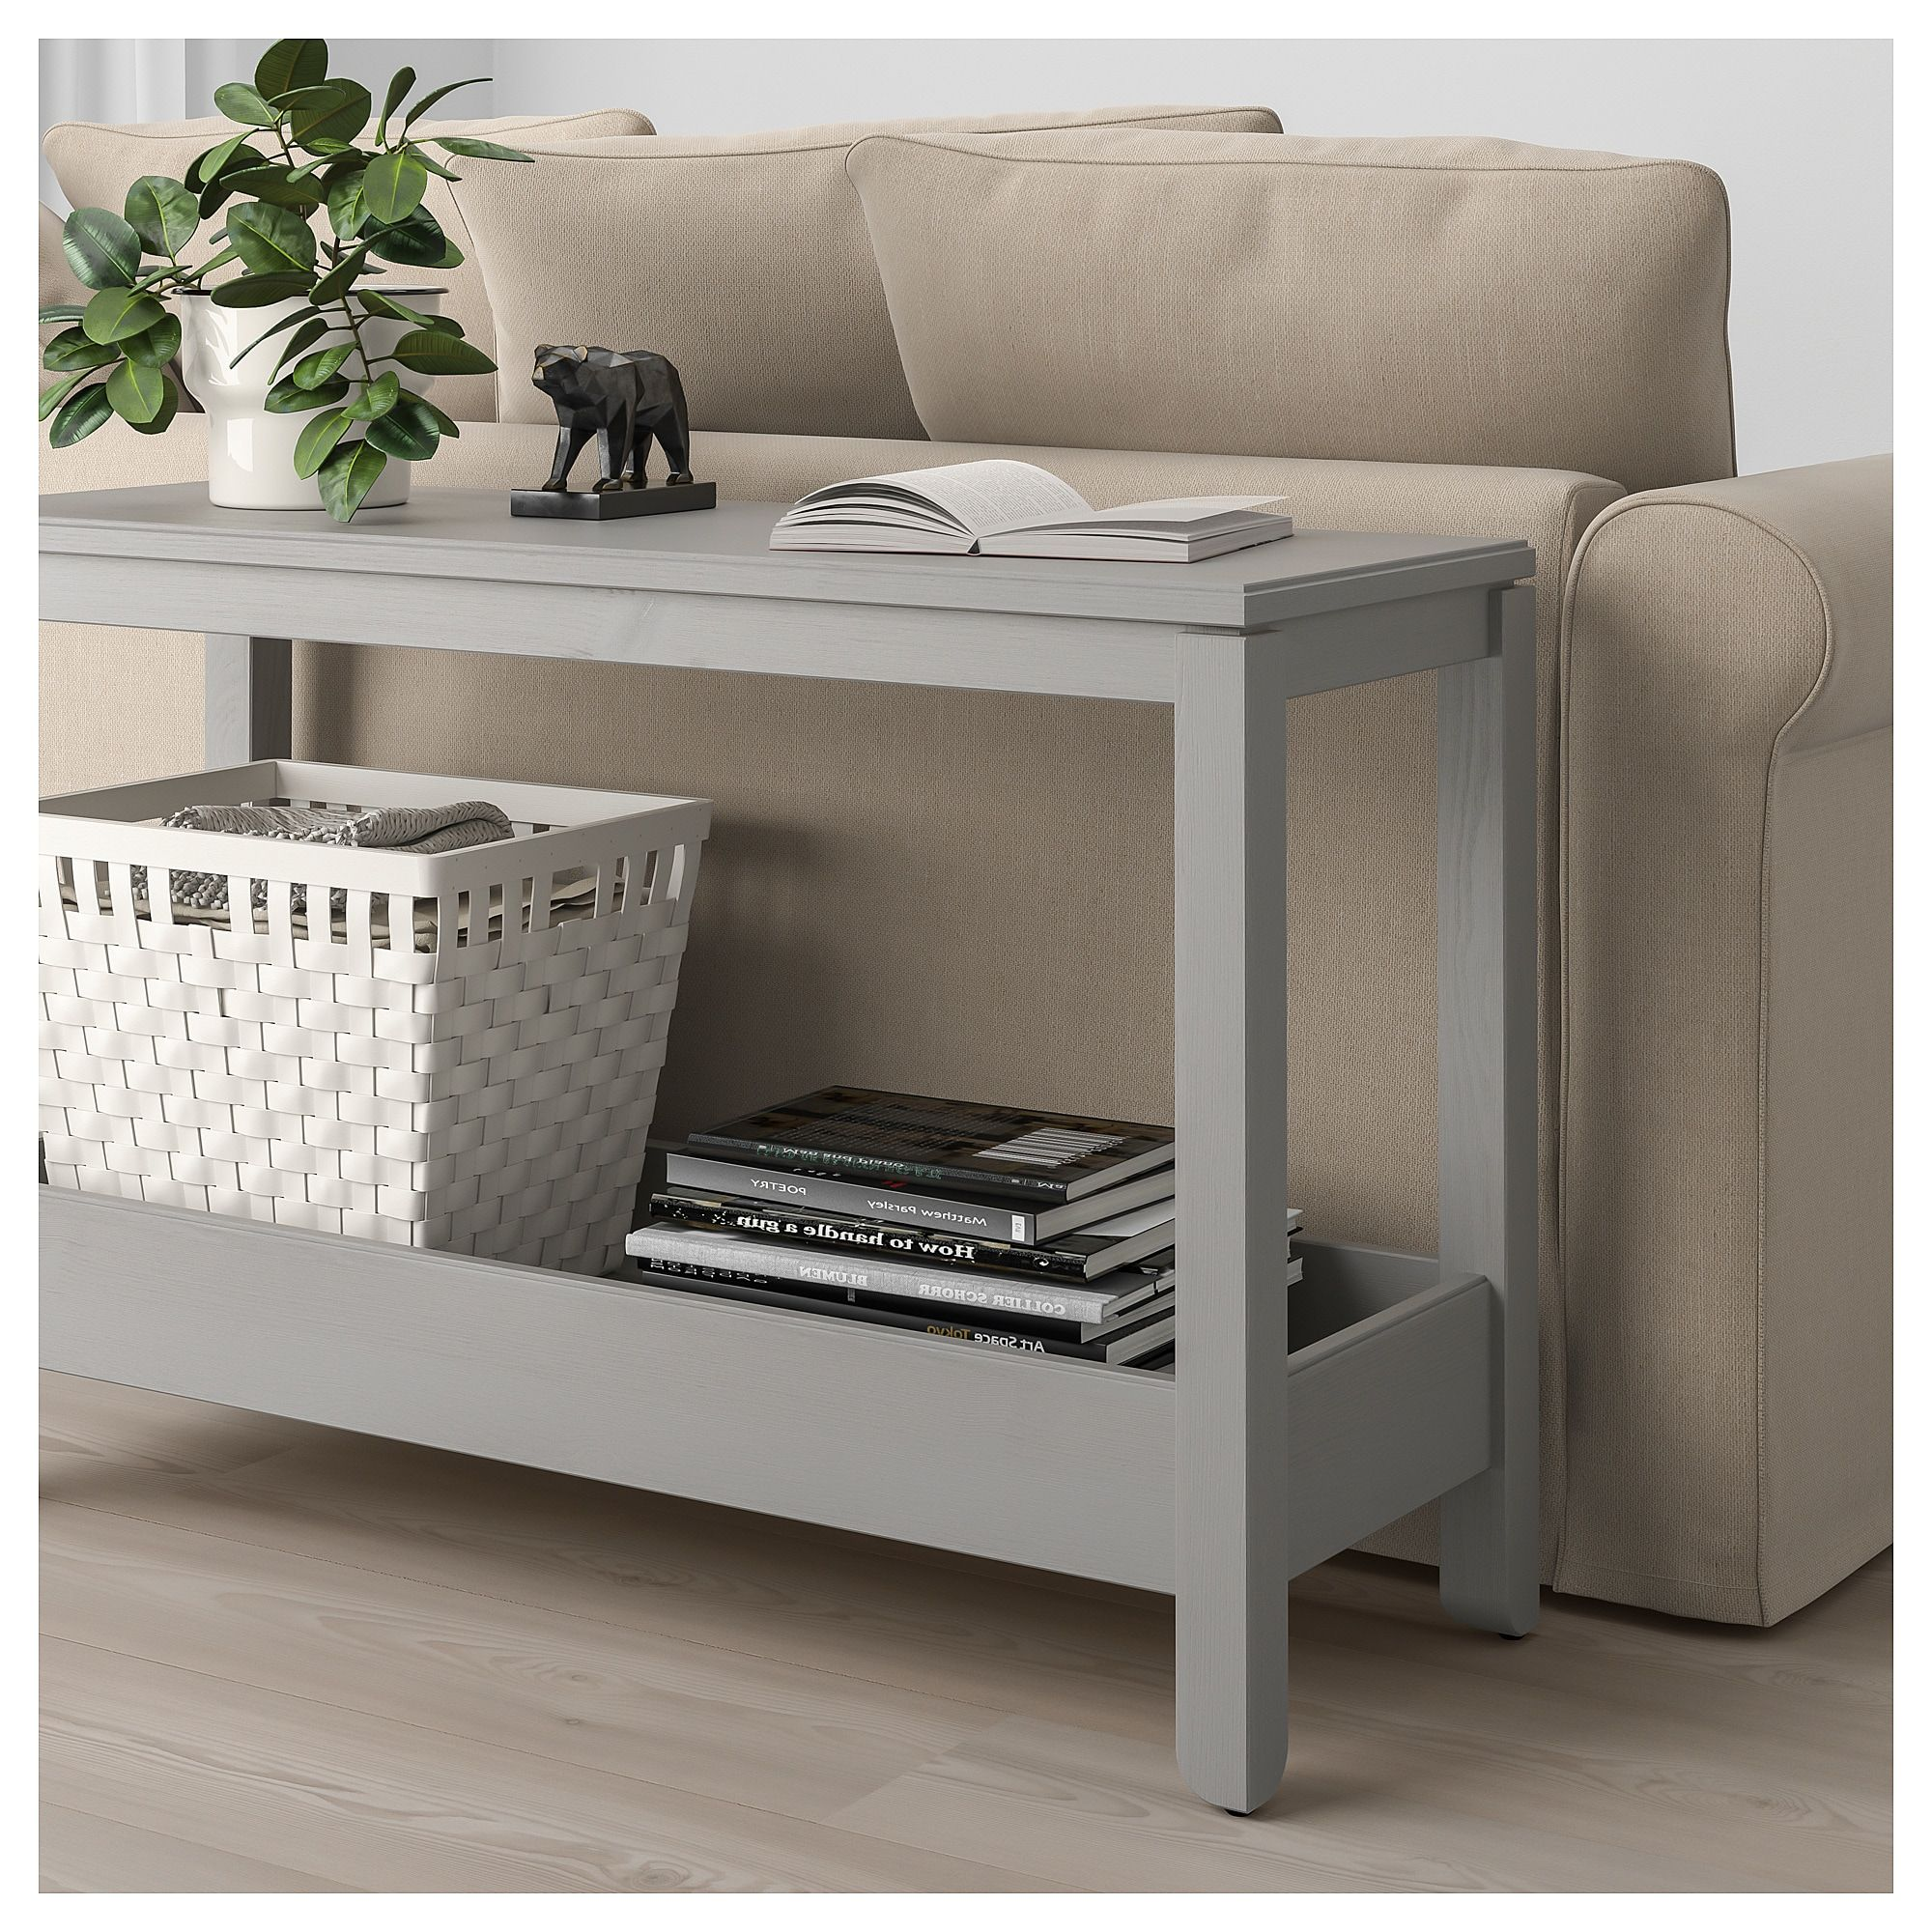 Console Grise Ikea Ikea Havsta Console Table Gray In 2019 Living Room Ikea